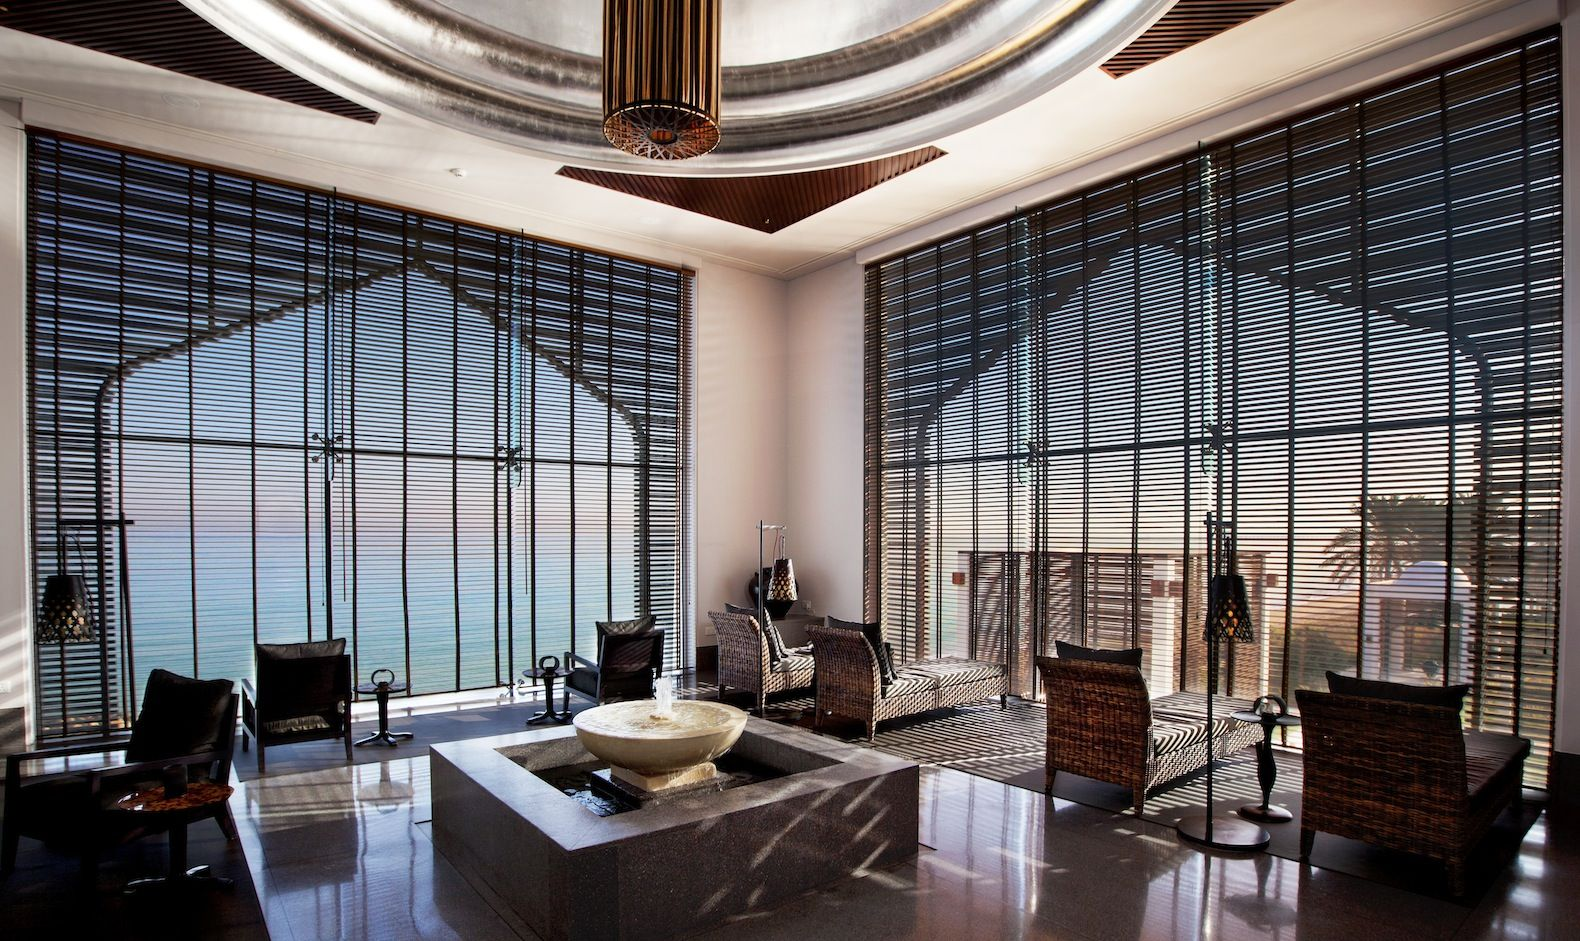 Luxury 5 Star Muscat Beach Hotel Resort In Oman With Images The Chedi Muscat Chedi Hotel Luxury Hotel